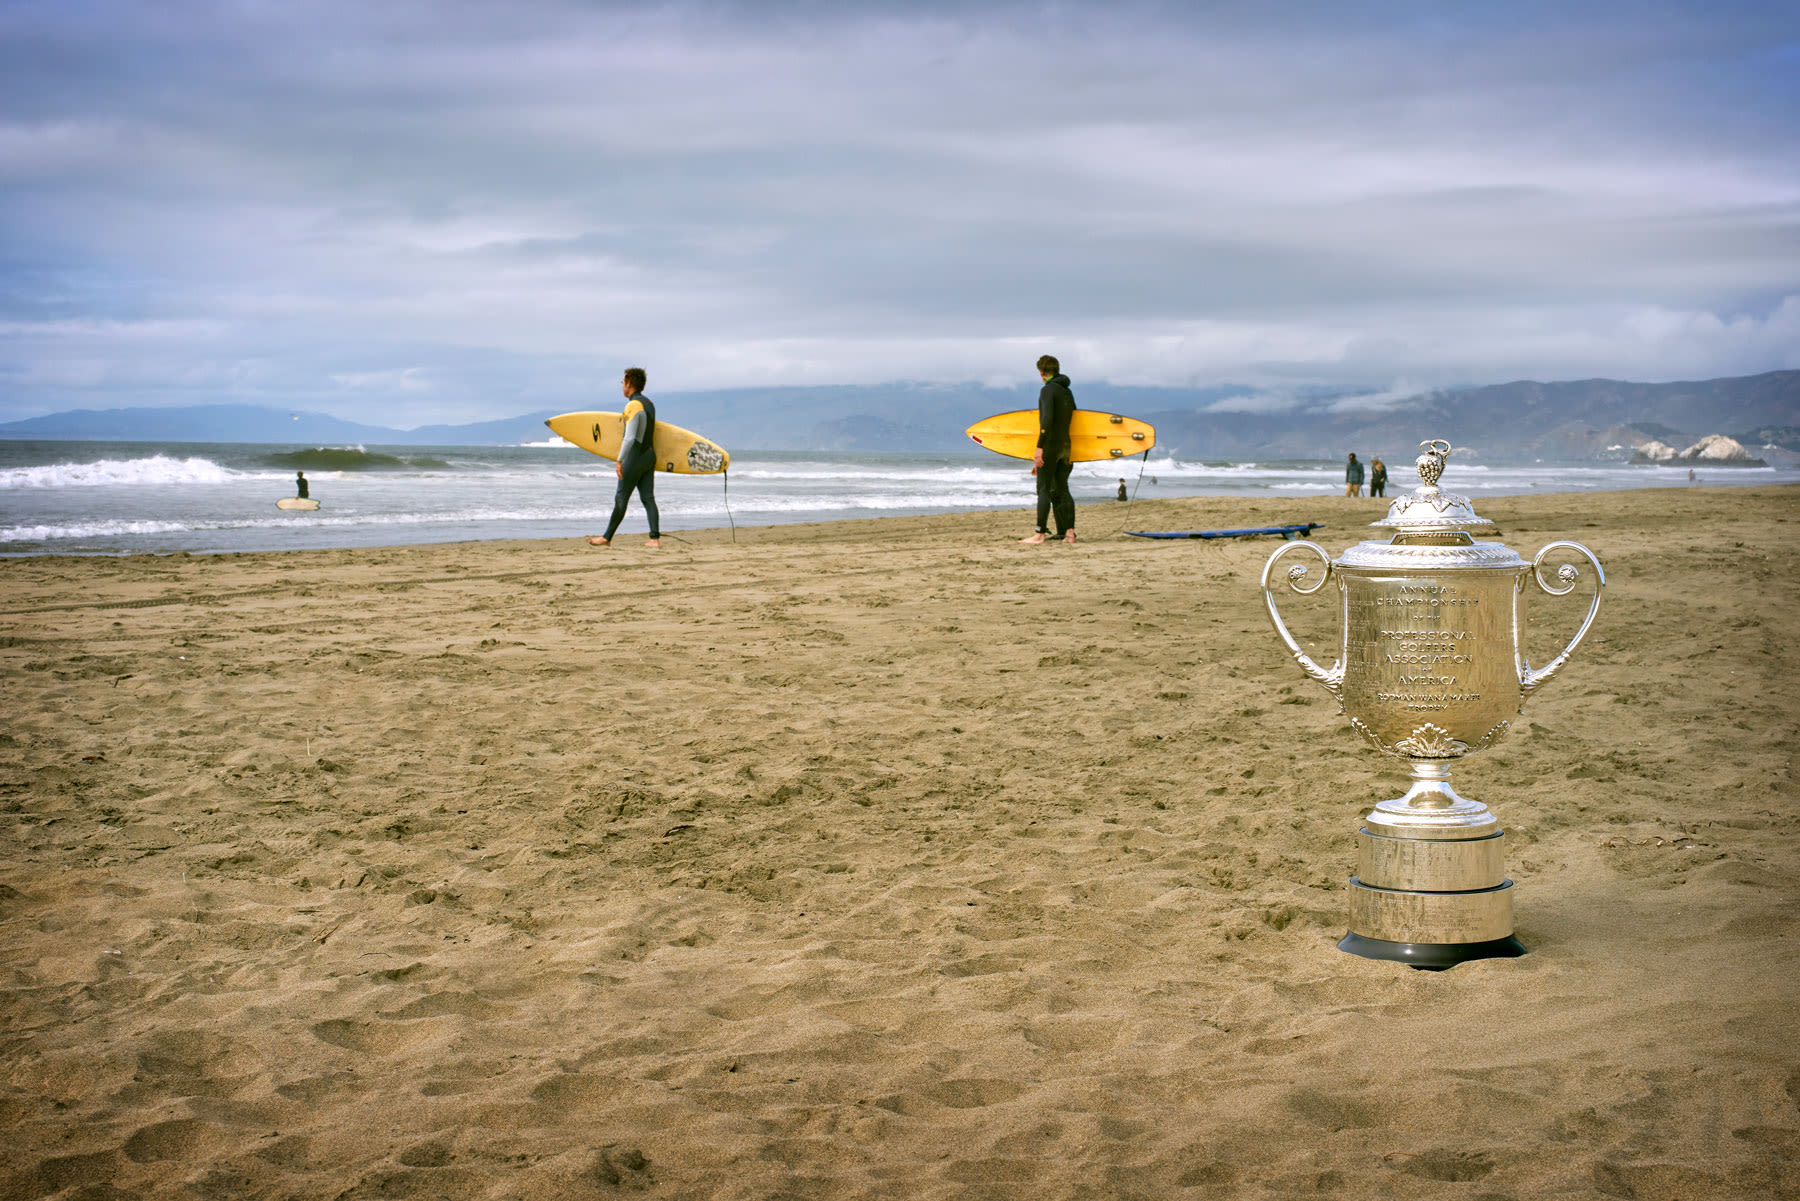 The Wanamaker Trophy sits on the beach as surfers head out to ride the waves of the Pacific Ocean.